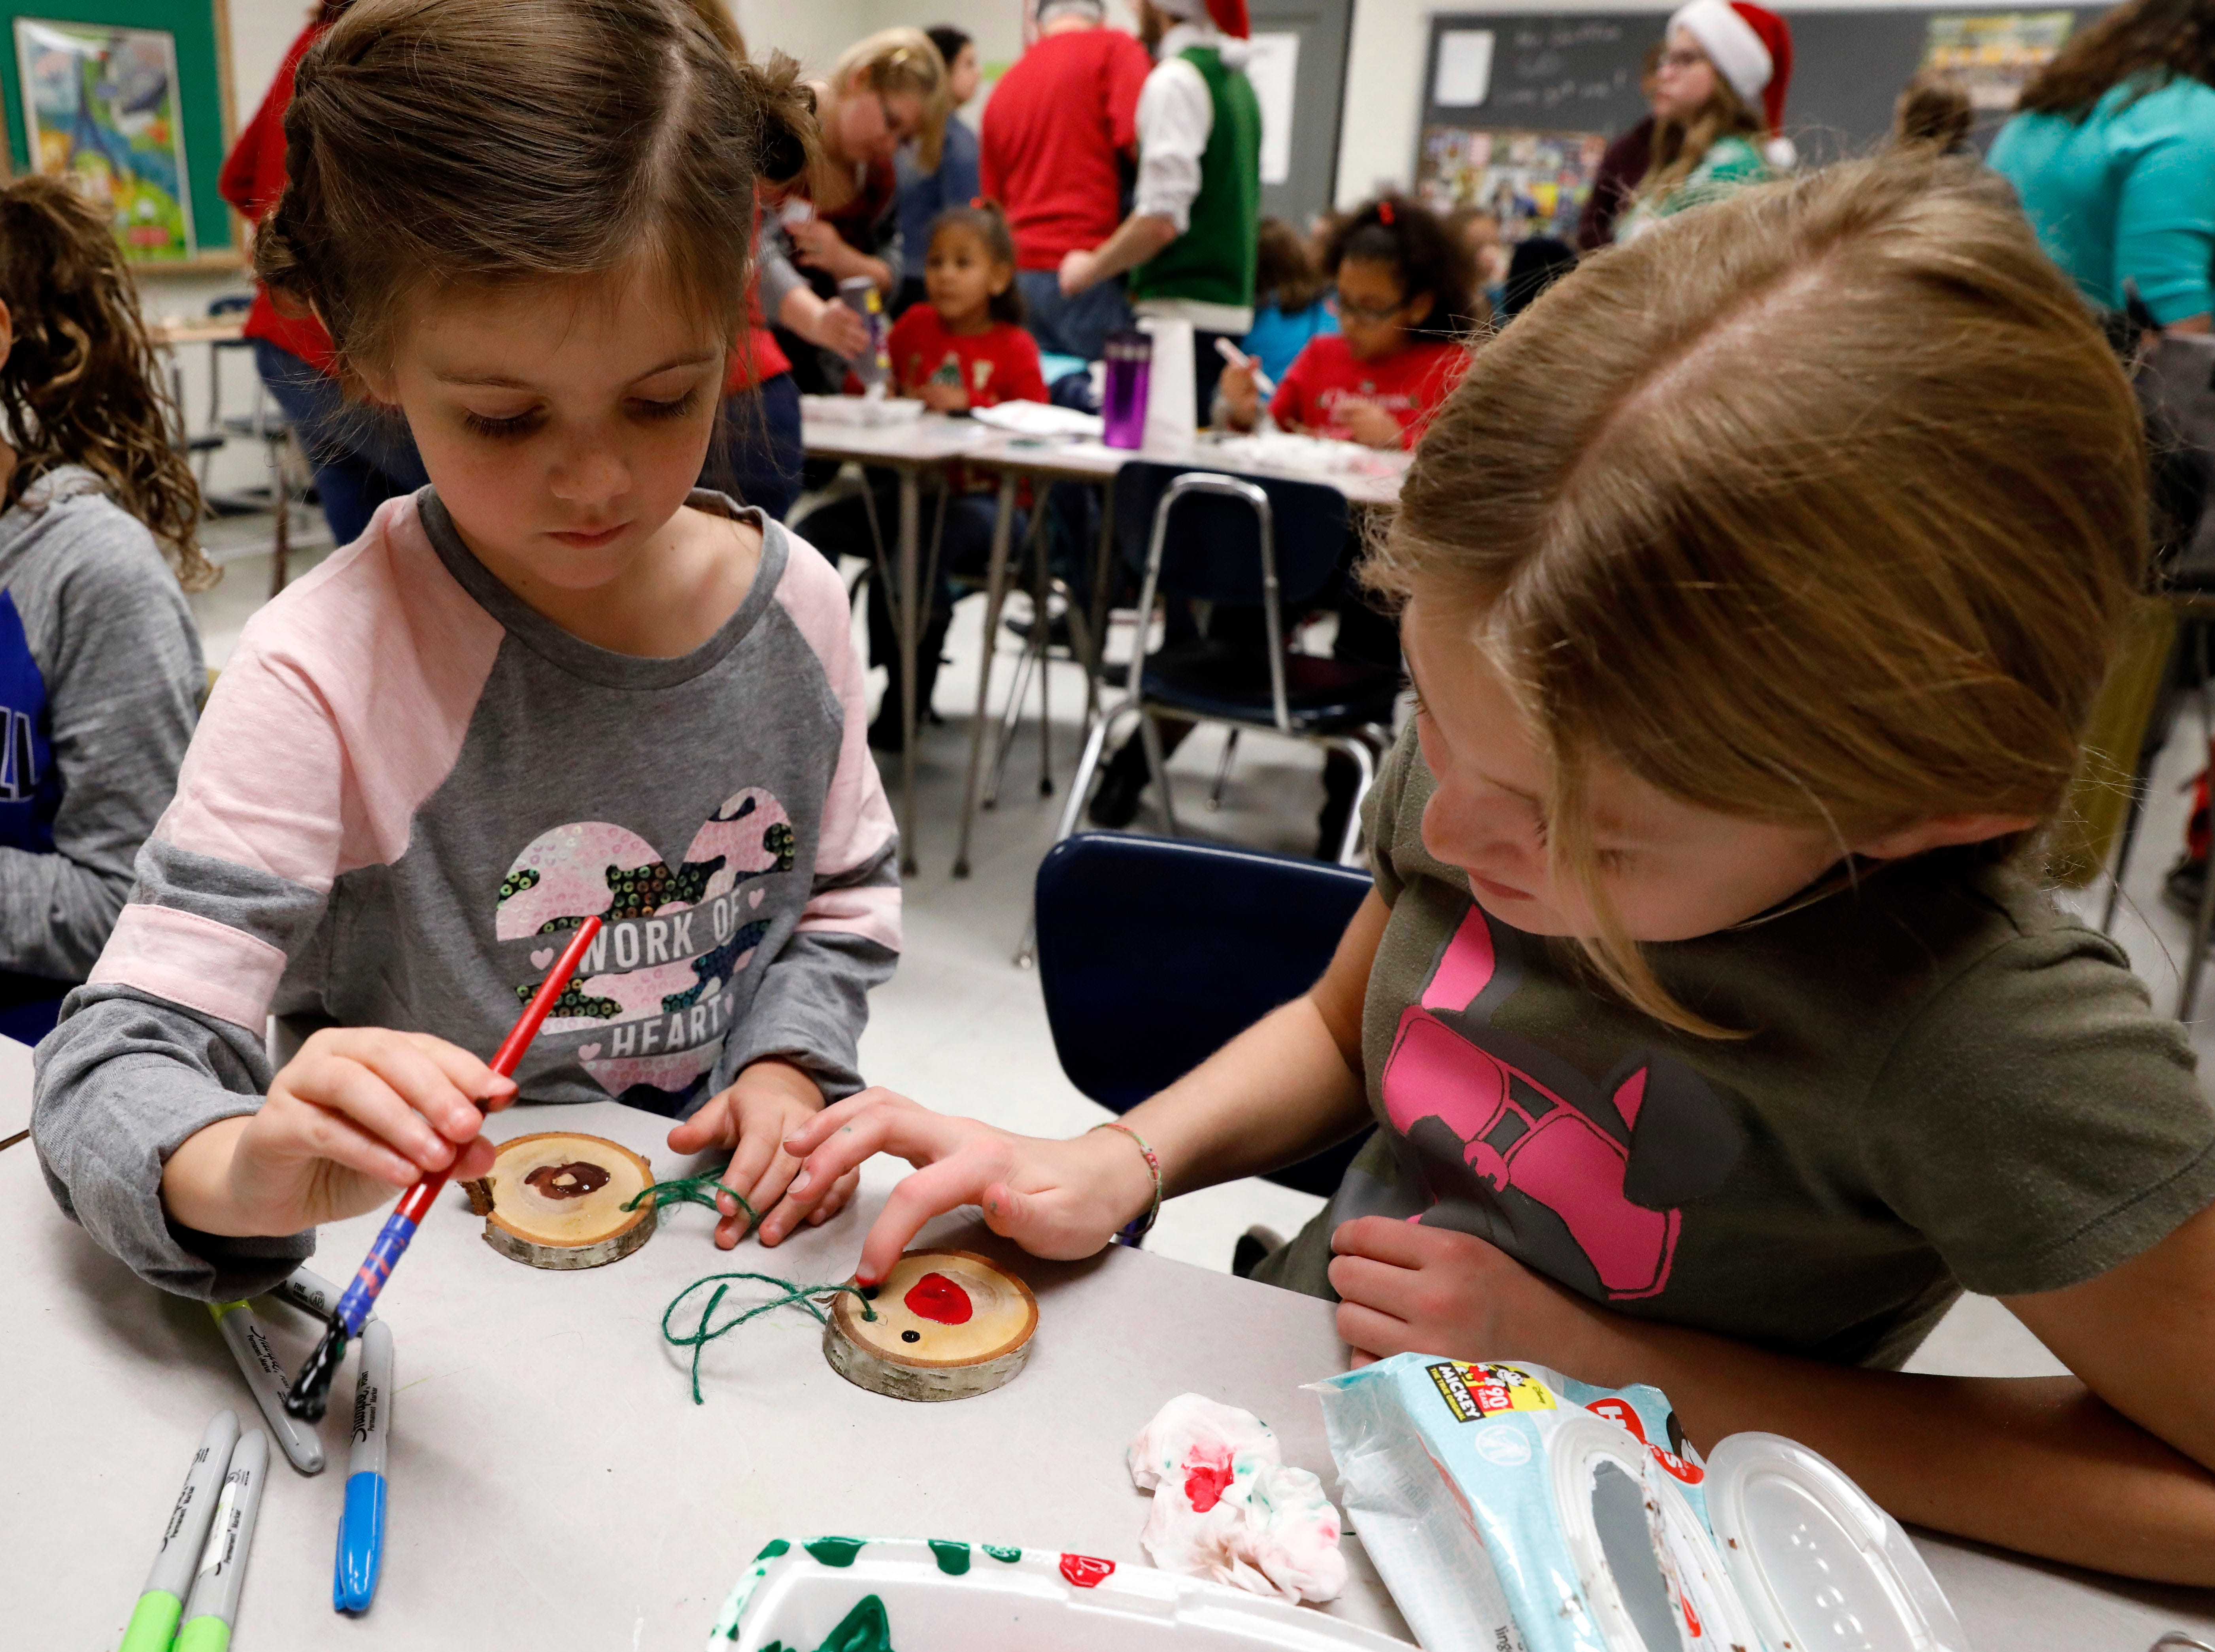 Joss Roinette, 7, left, and Cruz Short, 10, paint wooden Christmas ornaments Saturday afternoon, Dec. 1, 2018, during the annual Gift of Time free community event at Lancaster High School in Lancaster.